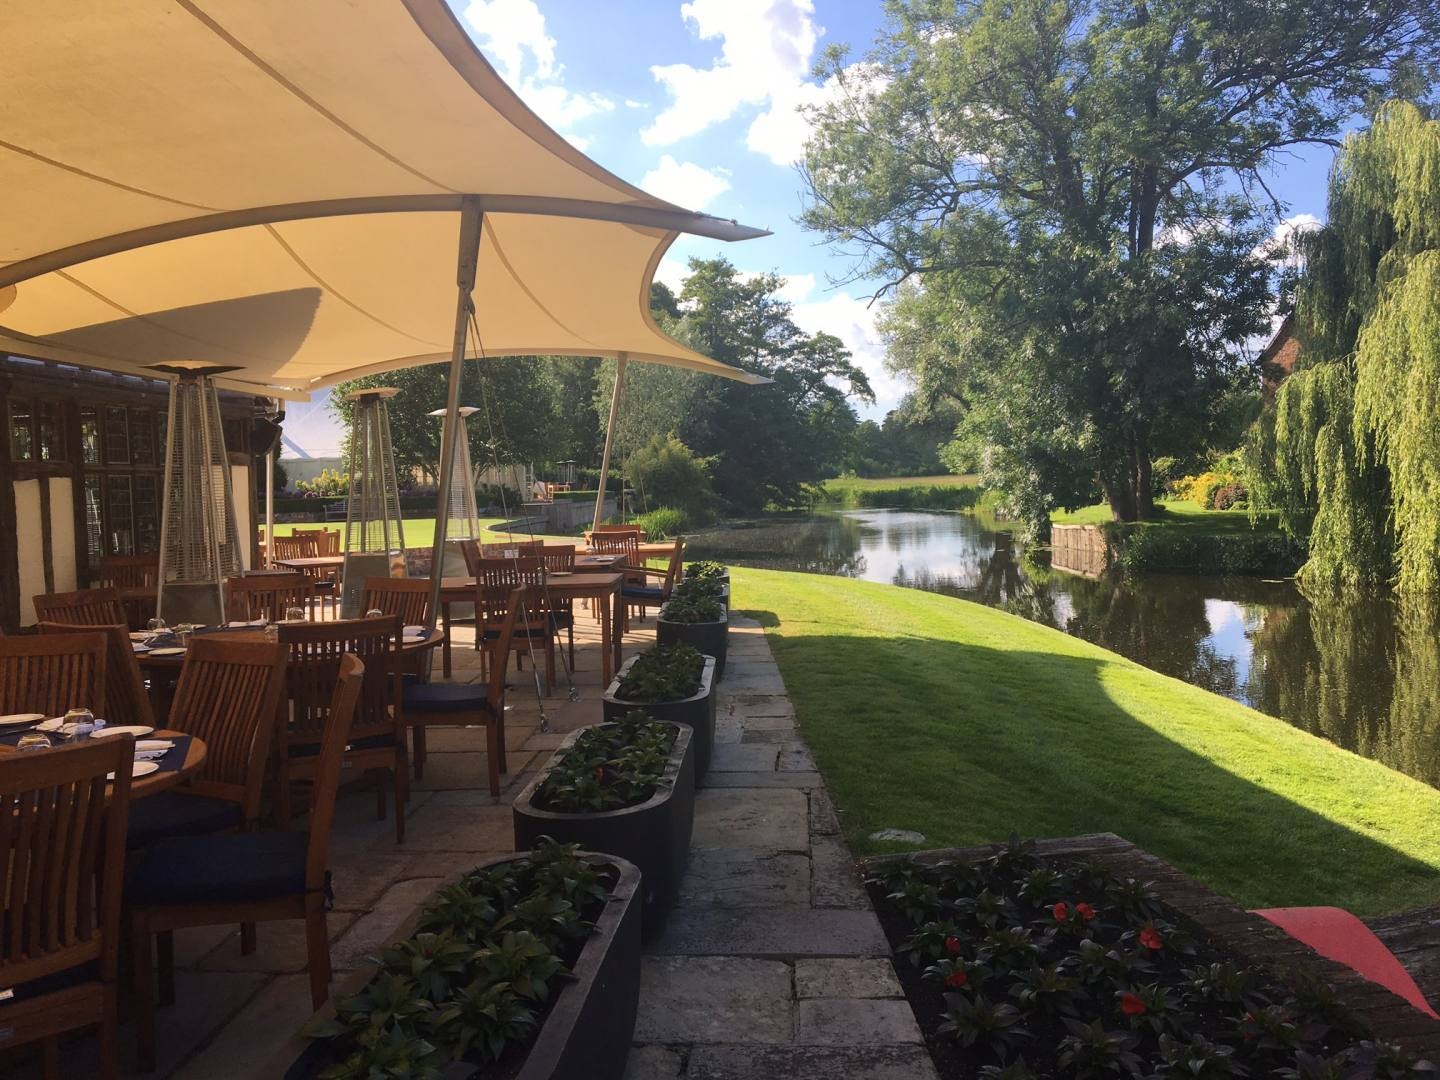 Summer Dining at Le Talbooth in Dedham